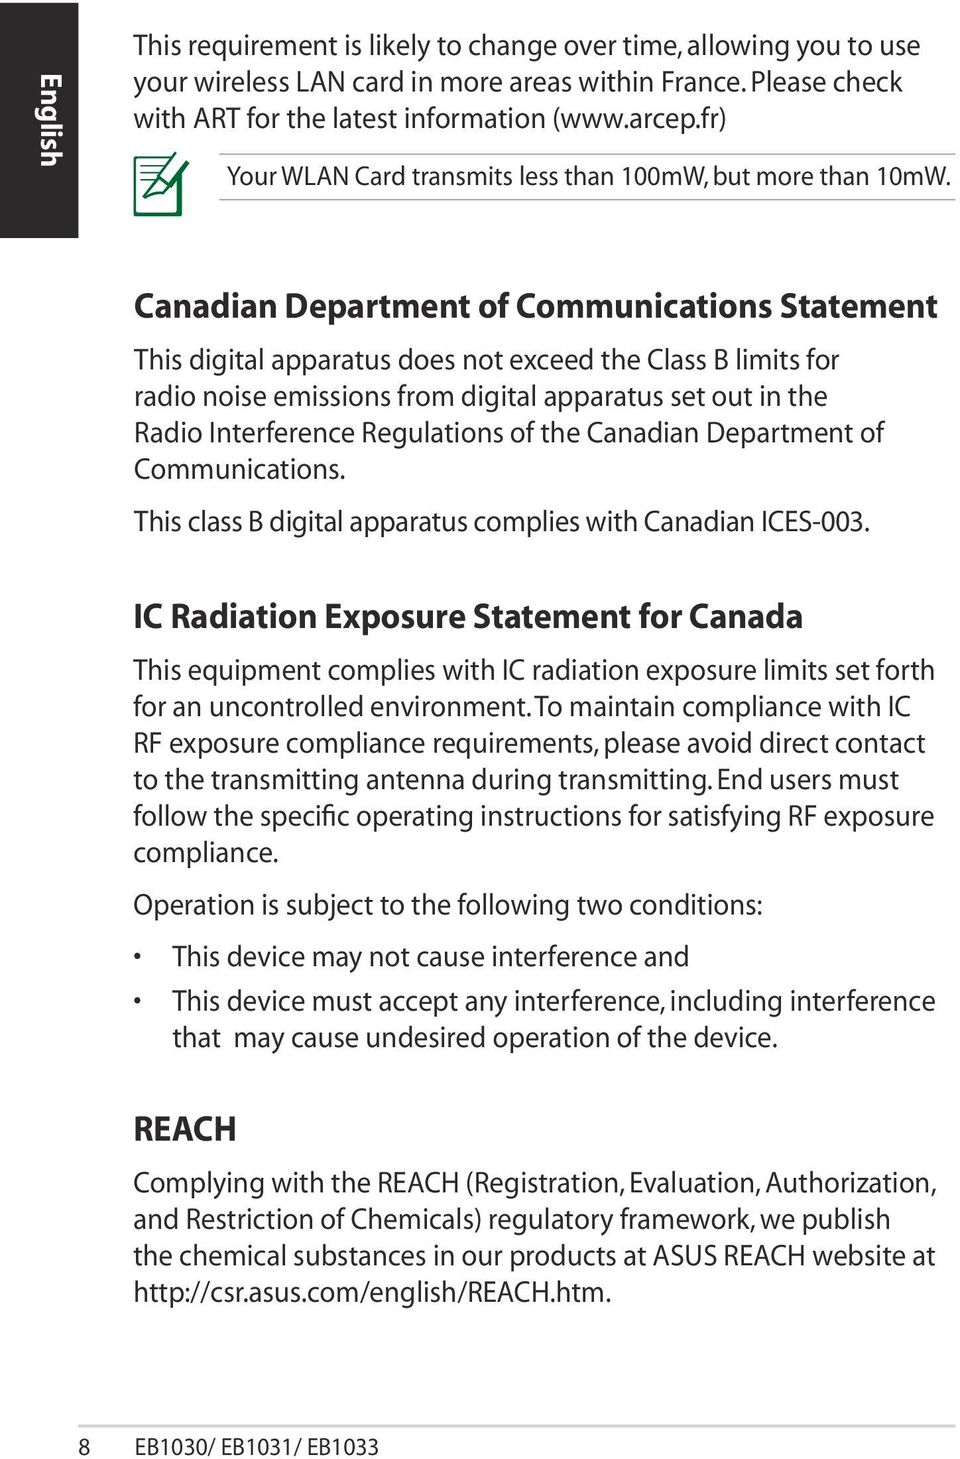 Canadian Department of Communications Statement This digital apparatus does not exceed the Class B limits for radio noise emissions from digital apparatus set out in the Radio Interference